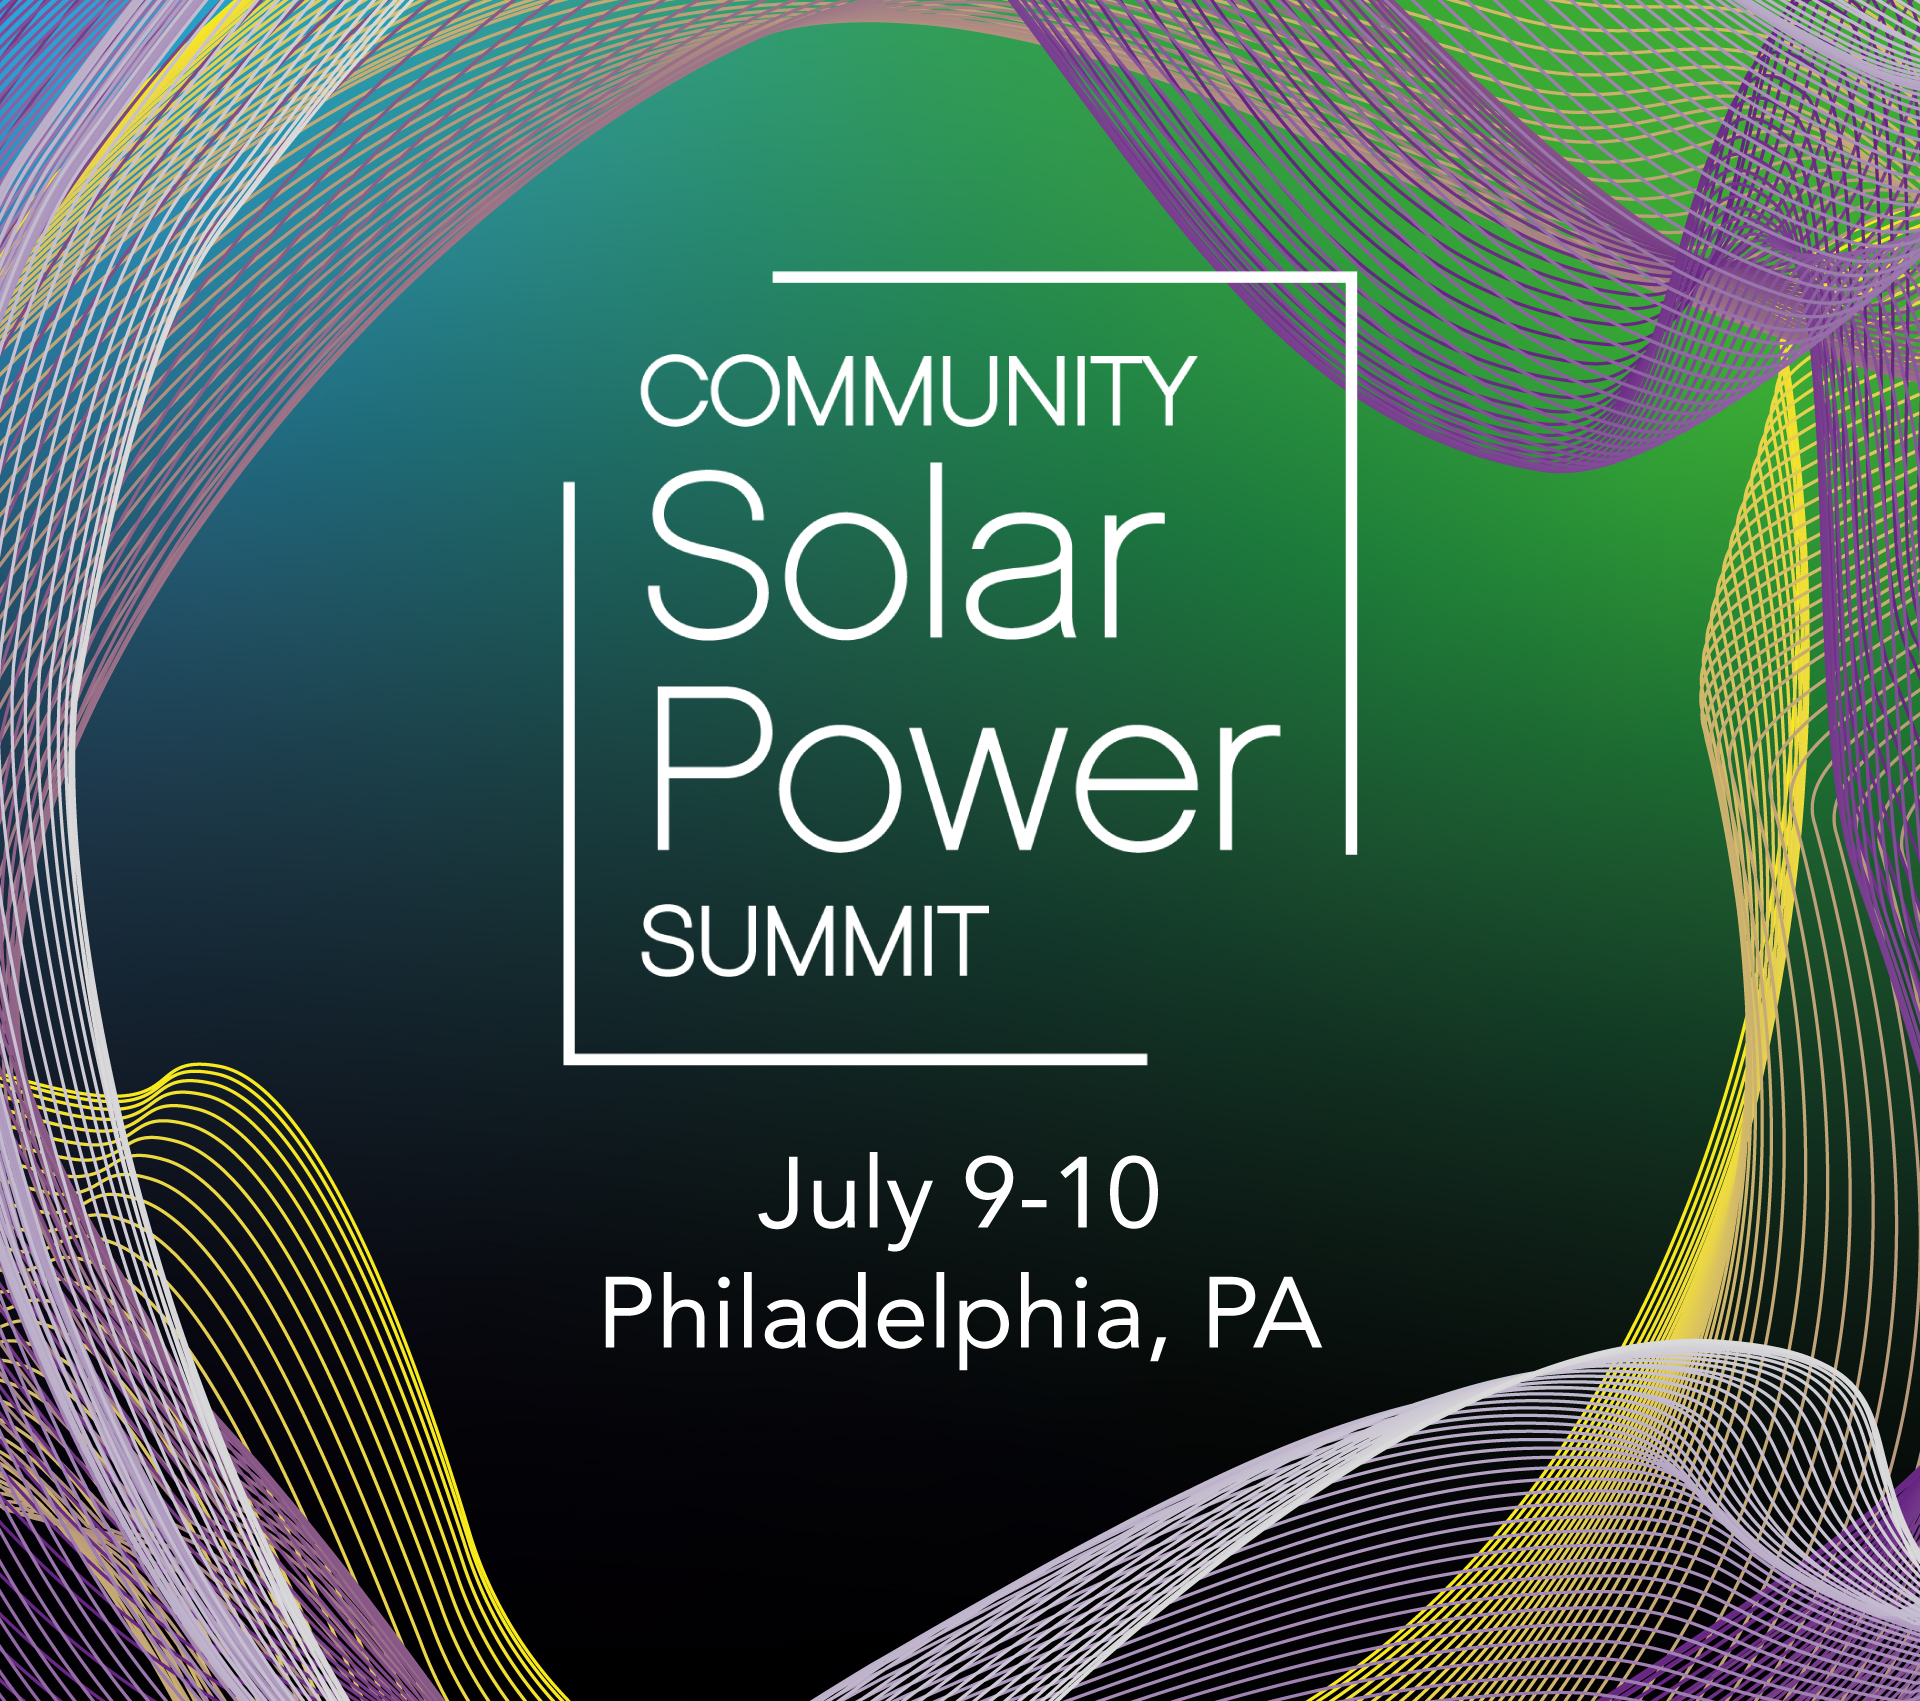 Community Solar Power Summit